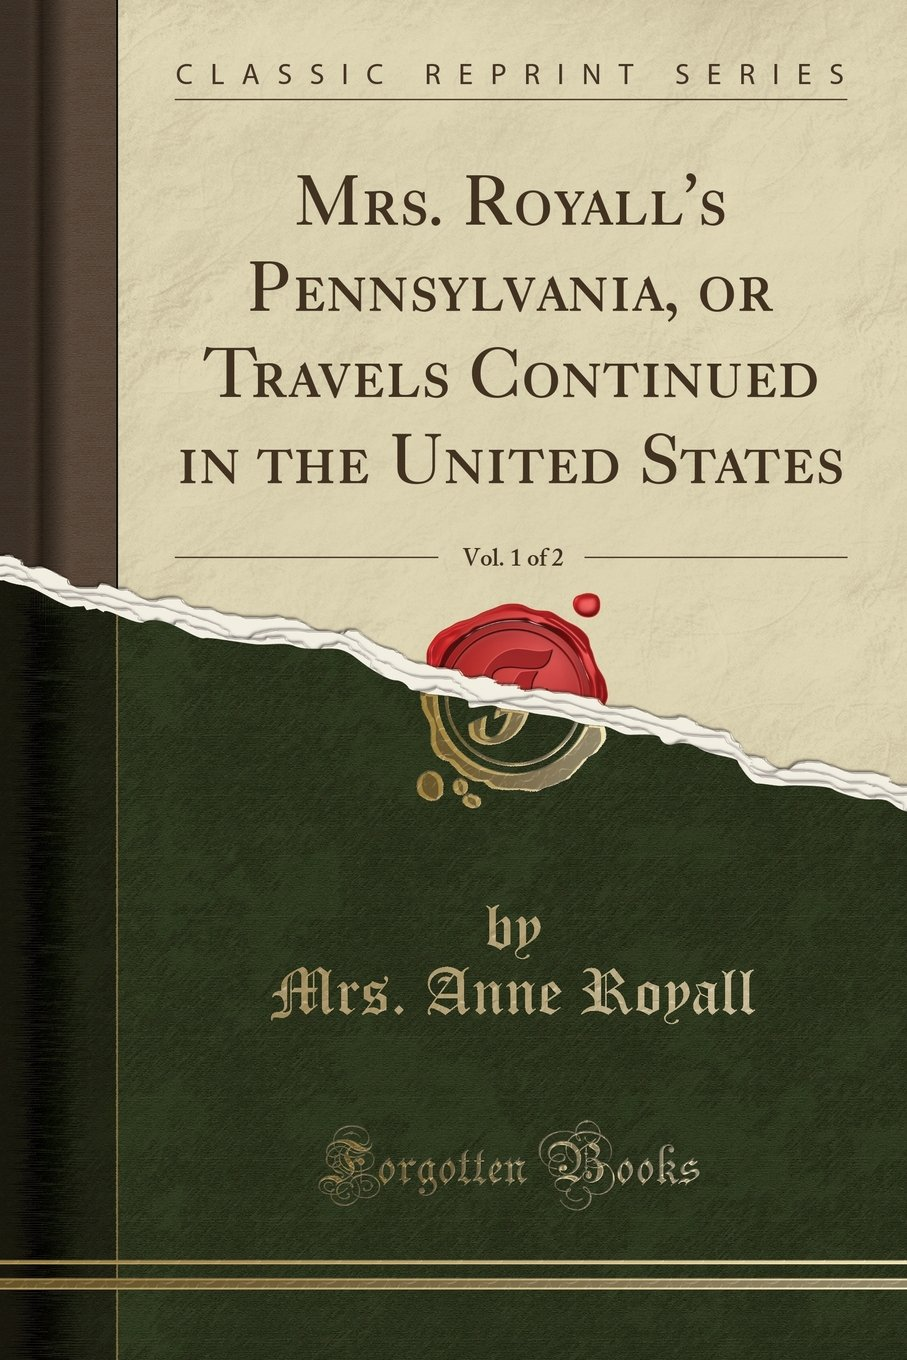 Mrs. Royall's Pennsylvania, or Travels Continued in the United States, Vol. 1 of 2 (Classic Reprint)